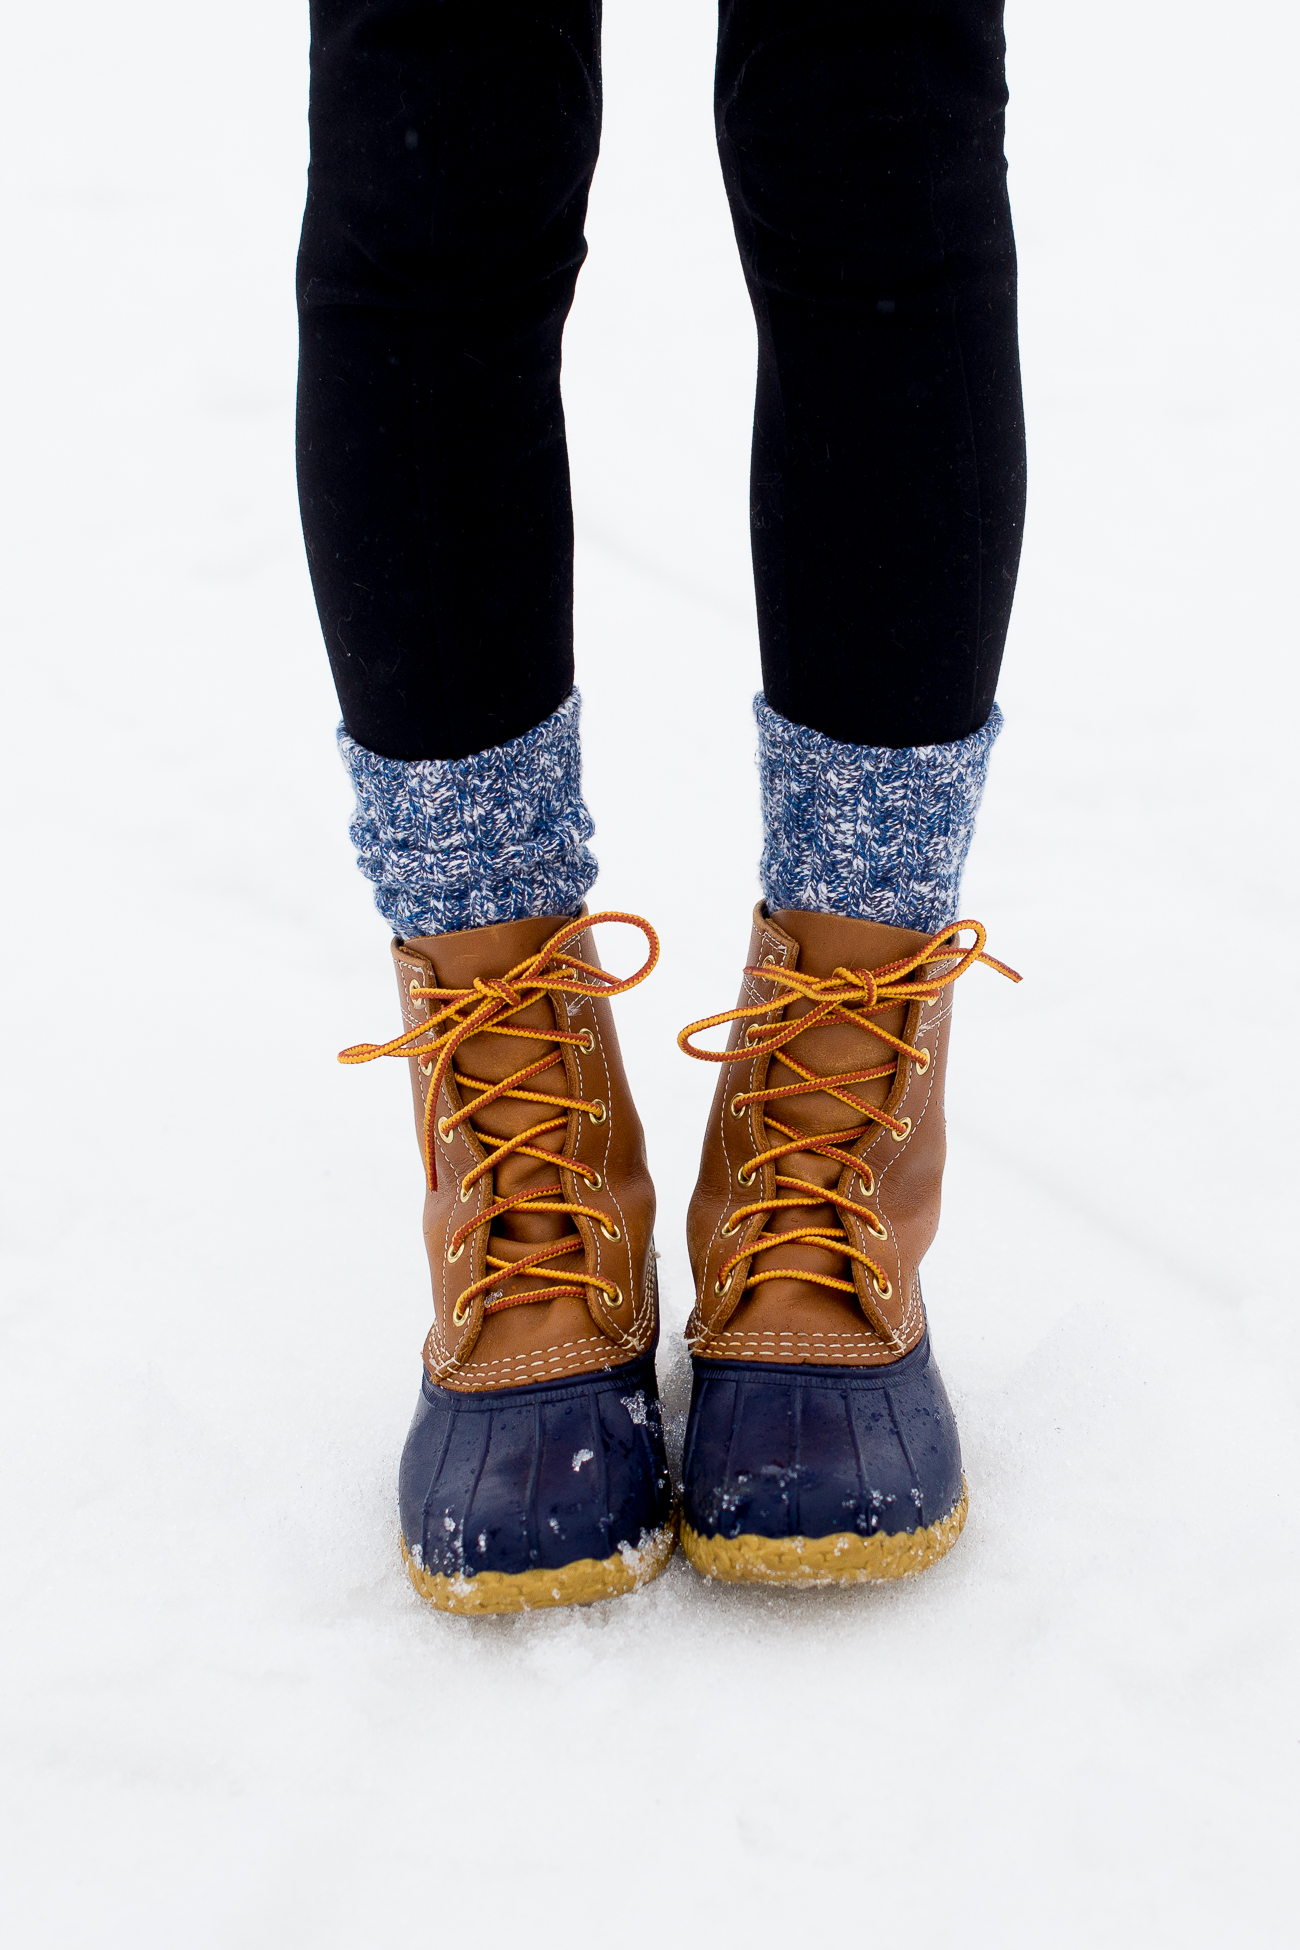 J.Crew Excursion Vest LL Bean Boots-87